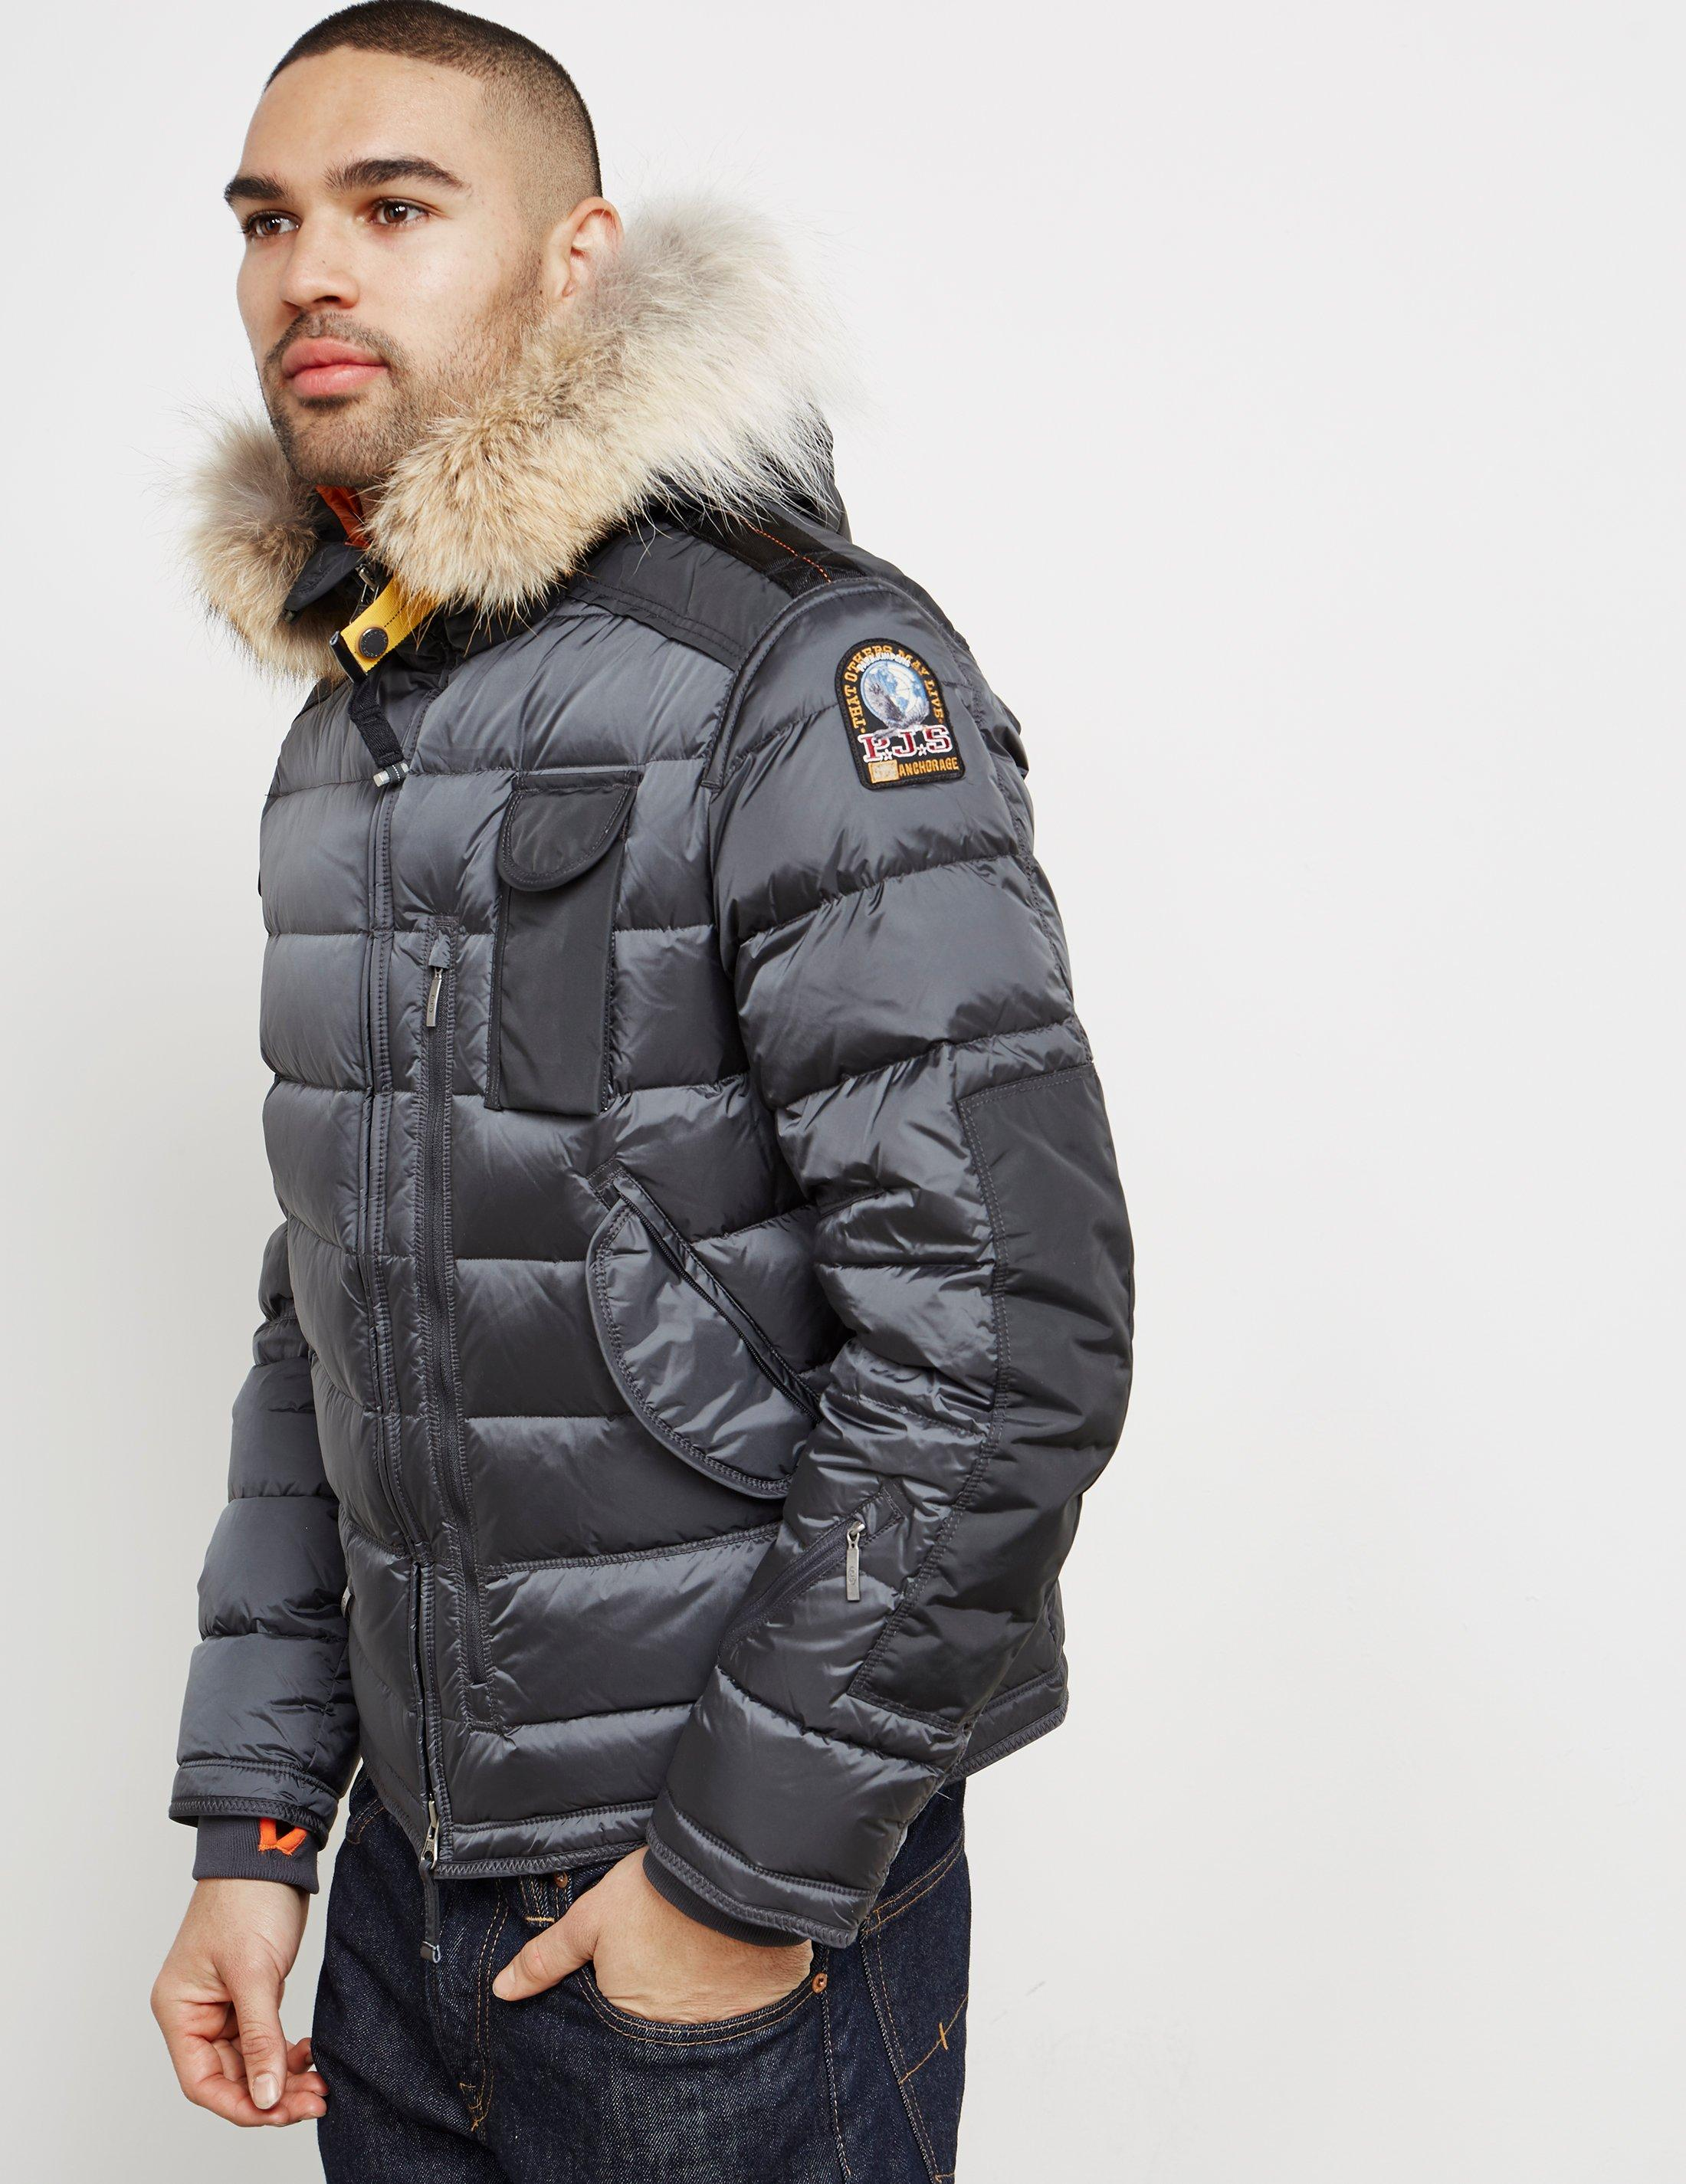 Pinterest Parajumpers Salg Parajumpers Jakke Parajumpers Outlet 2015-11-23 11:30 AM EST parajumpers norway fake parajumpers ...